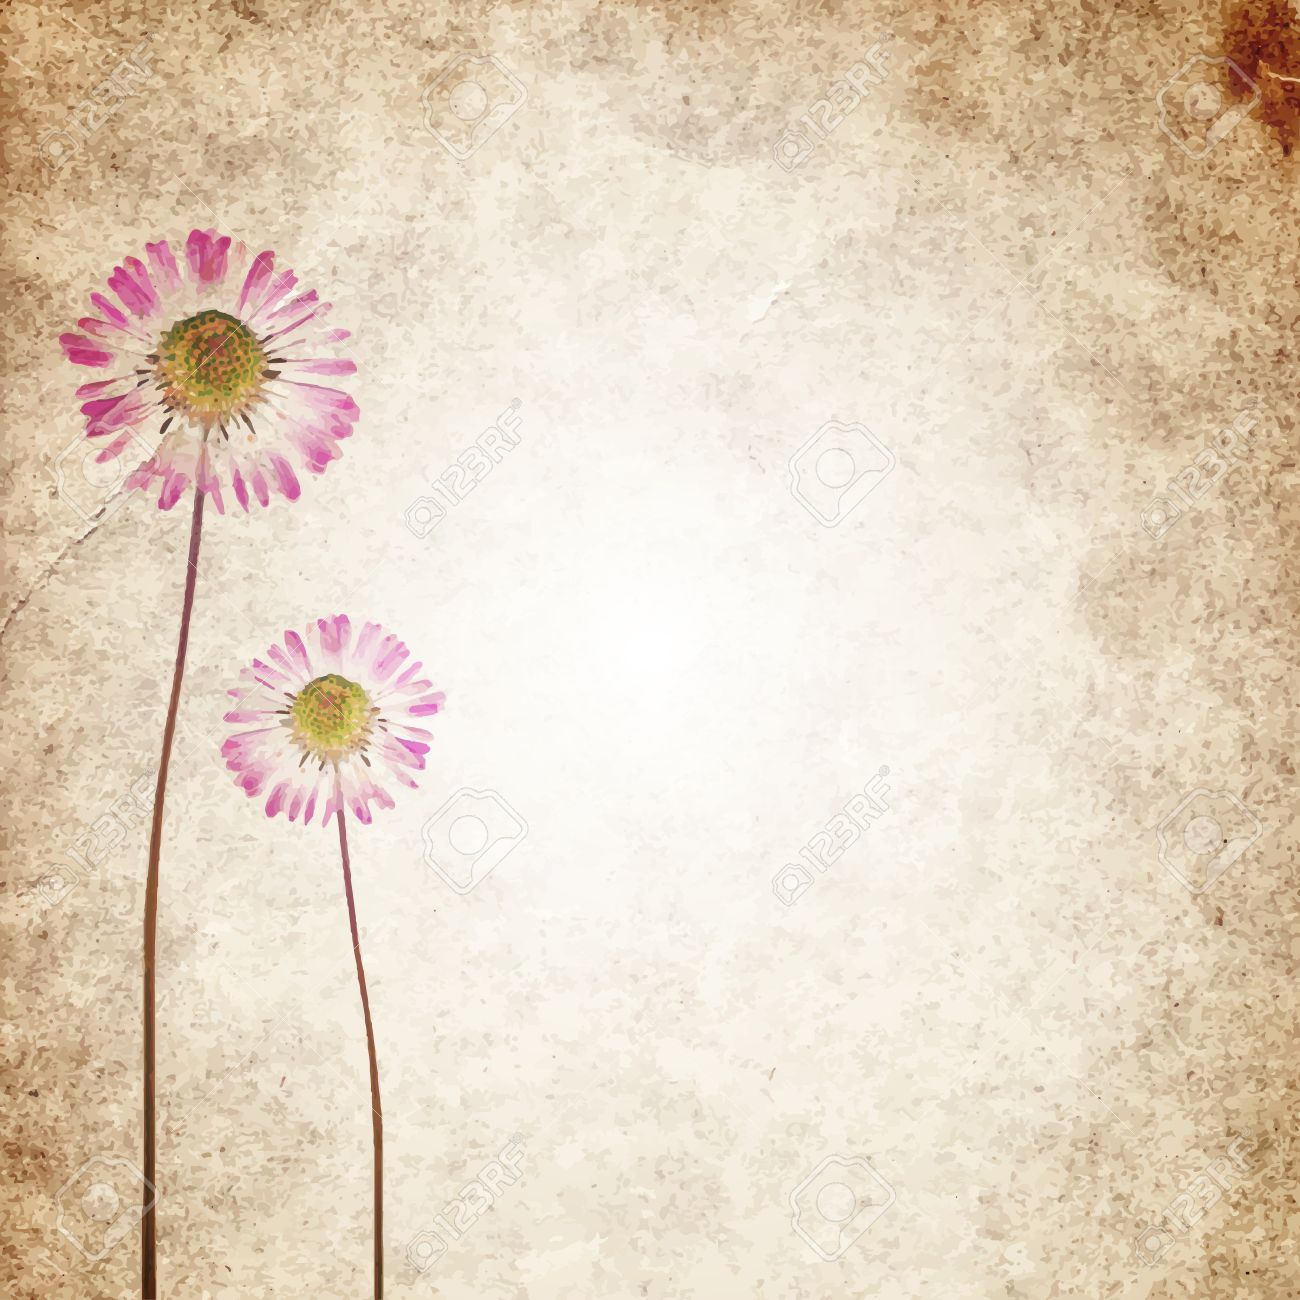 Old Vintage Paper Texture Background With Dry Flowers Royalty Free